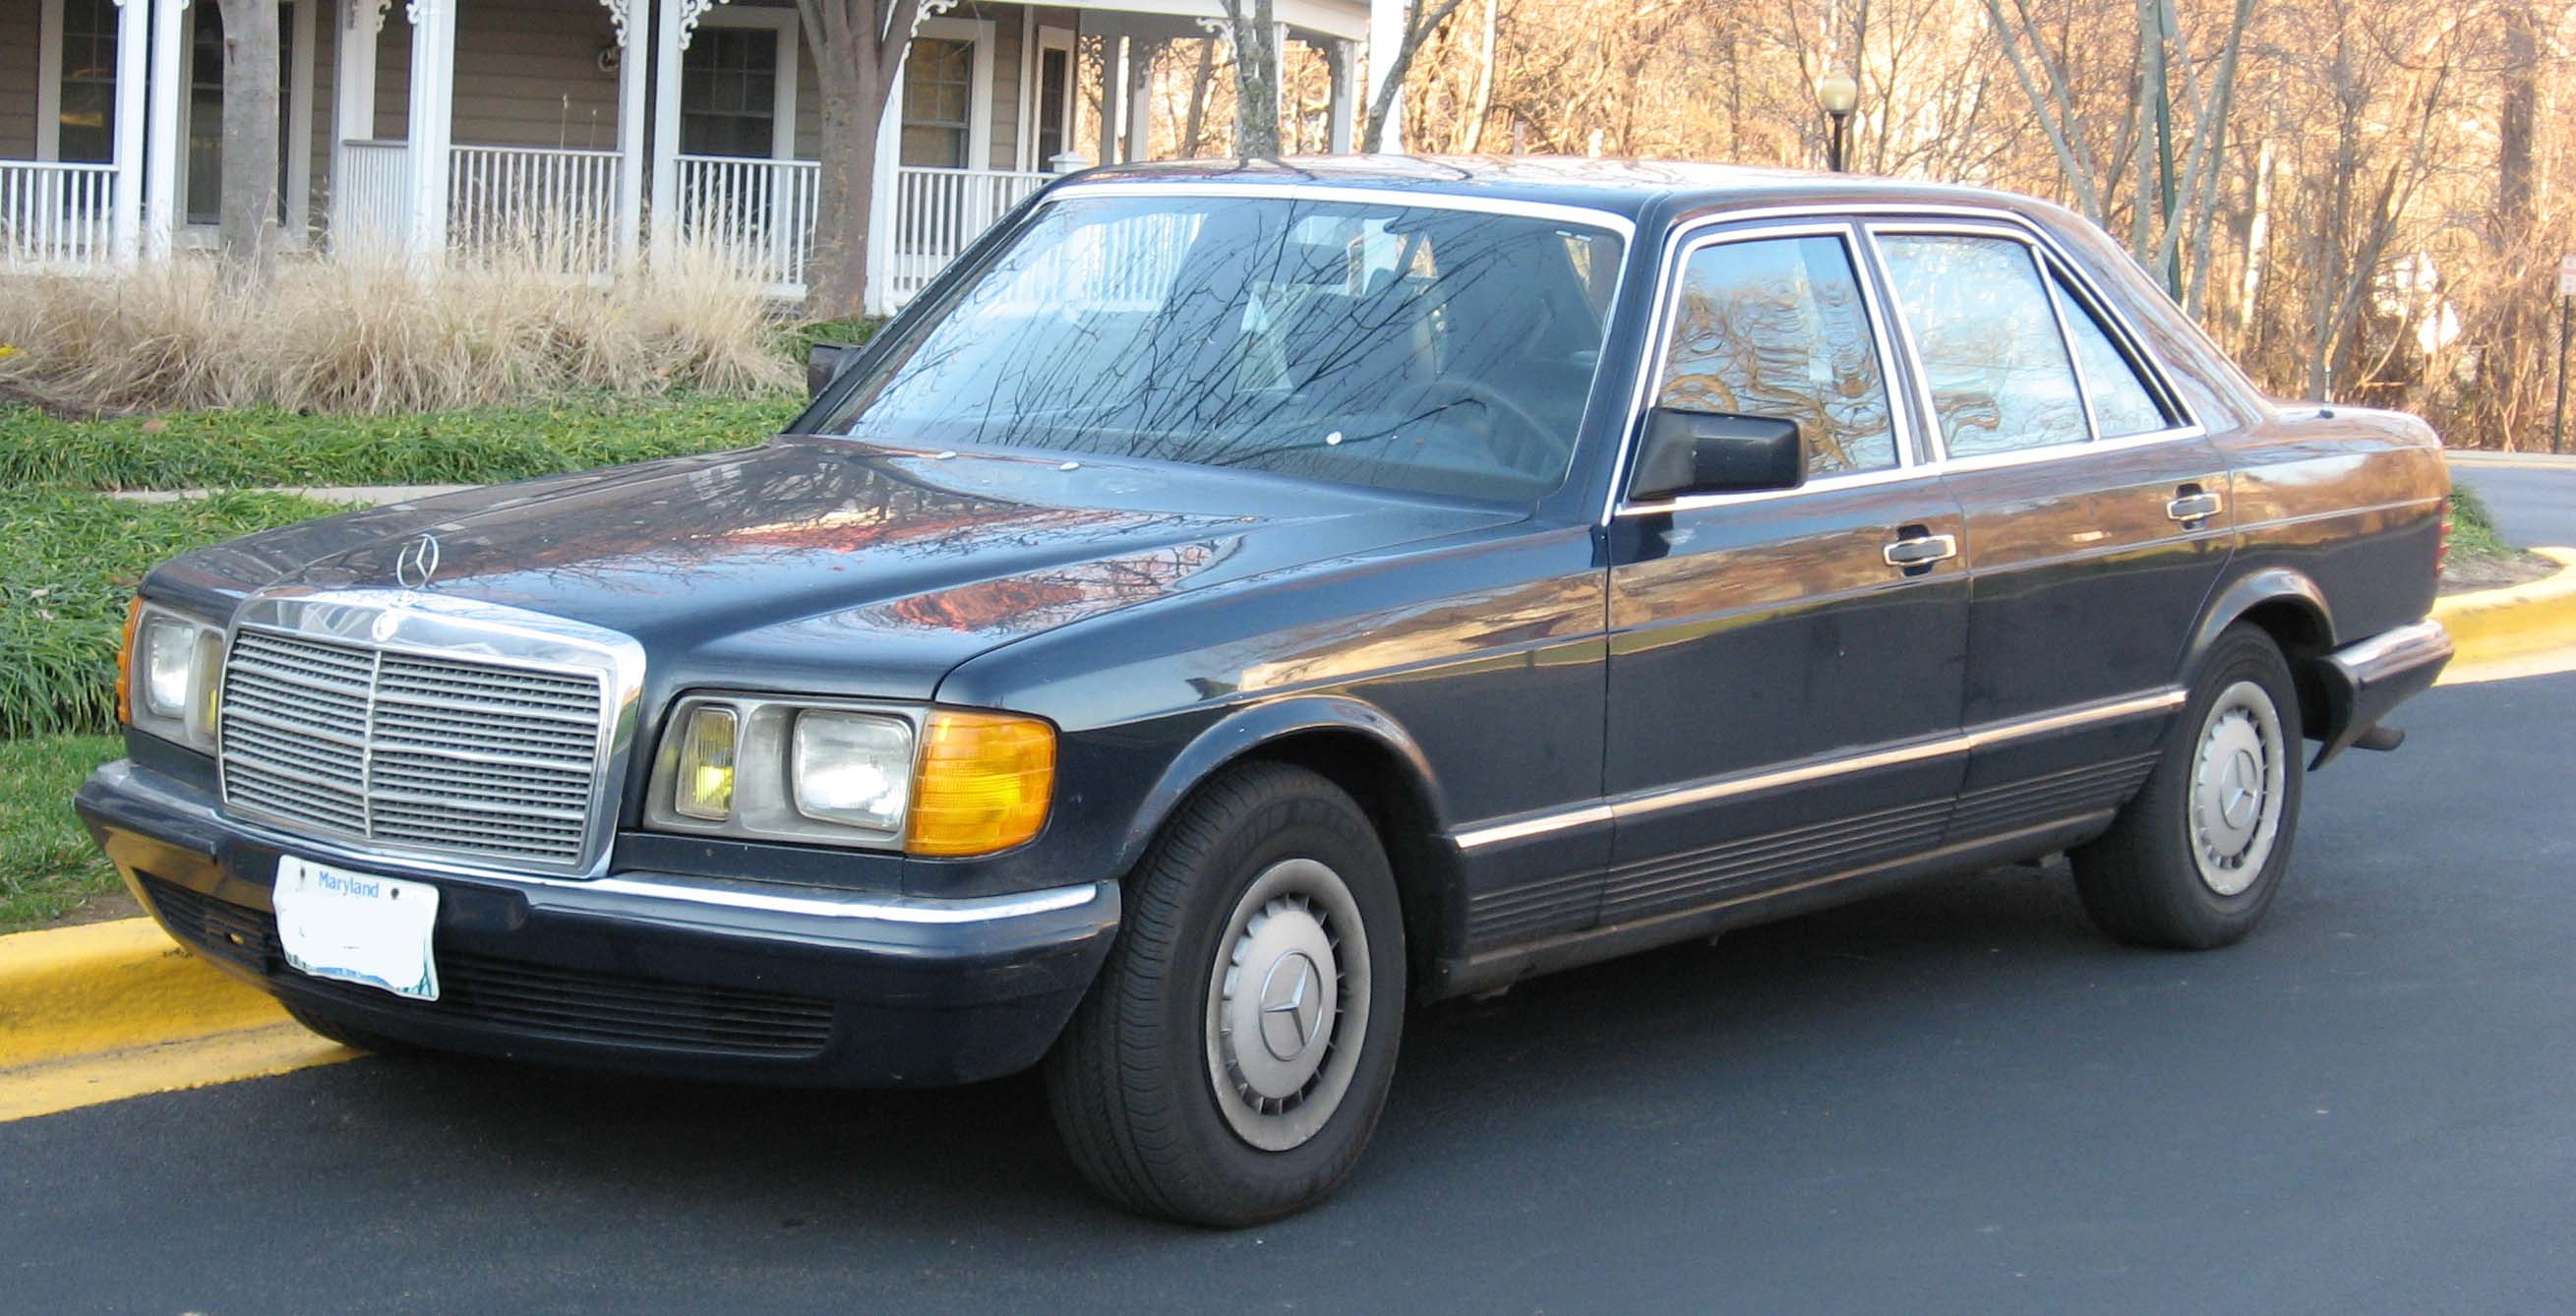 1985 Mercedes Benz 250 Photos Informations Articles E320 Wire Diagram 15